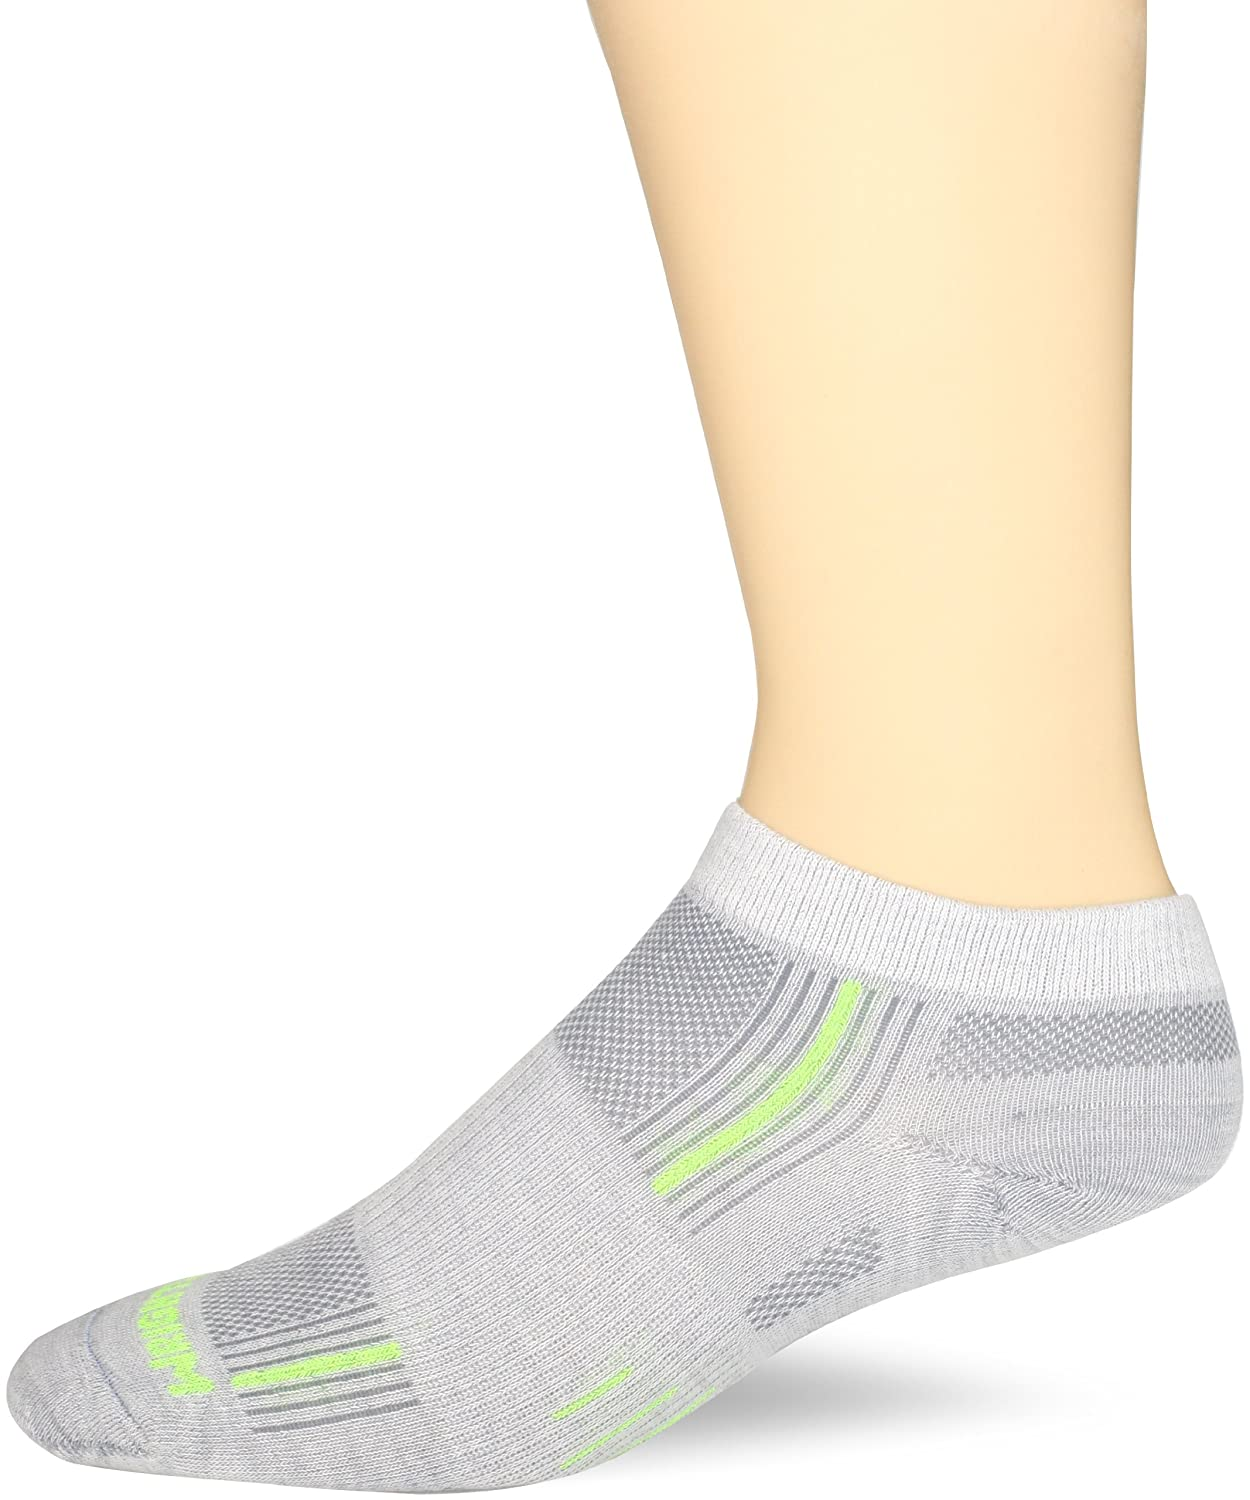 WrightSock Mens Stride lo Single Pack